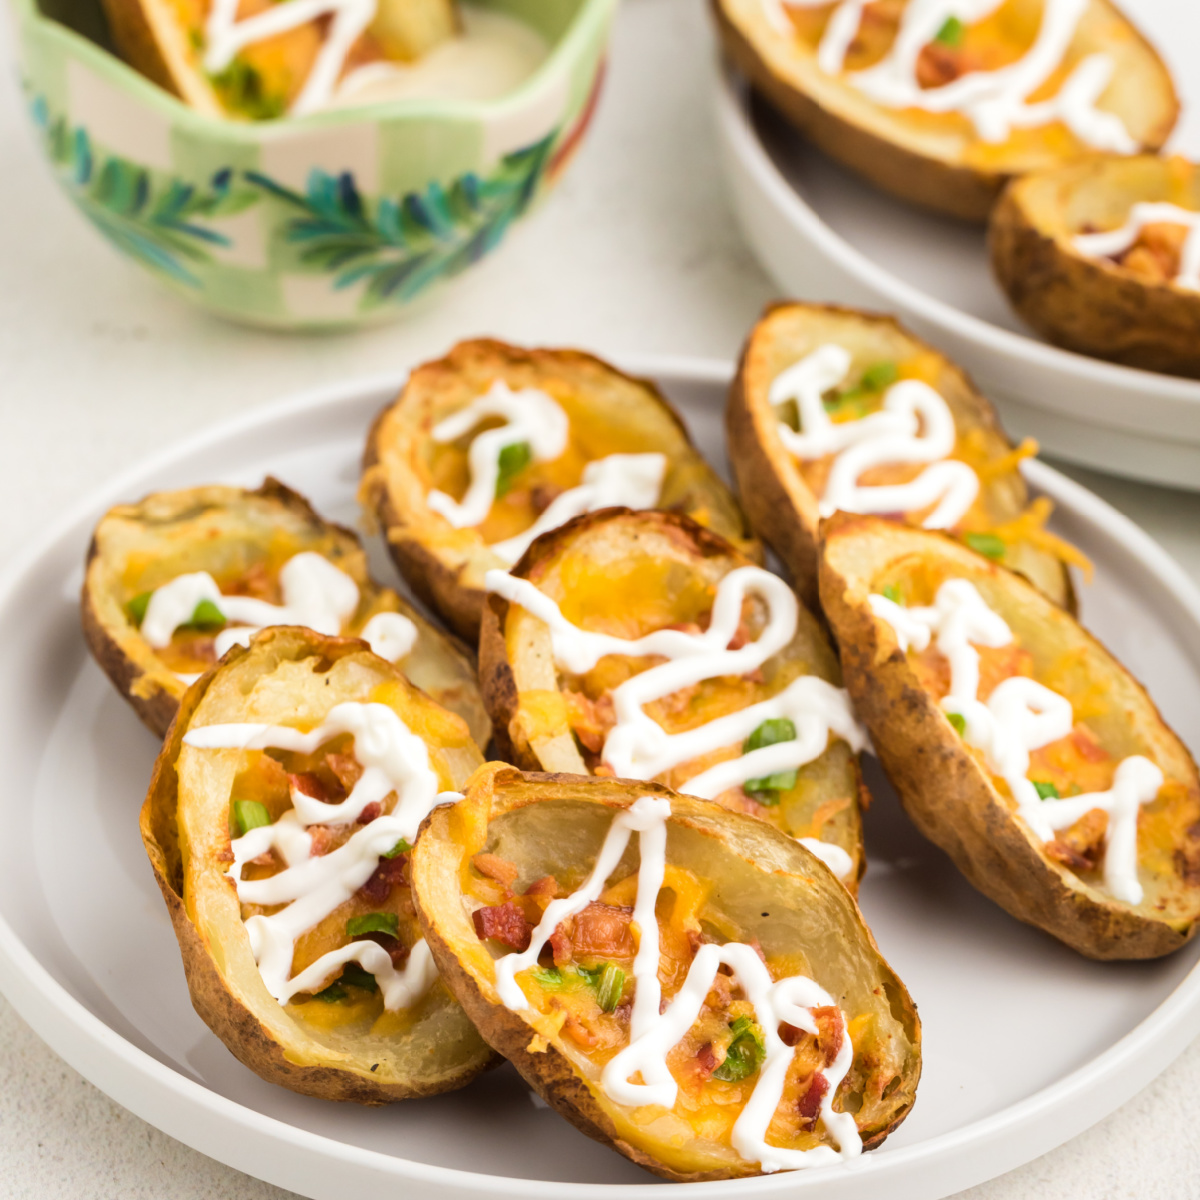 Loaded air fryer potato skins ready to eat.